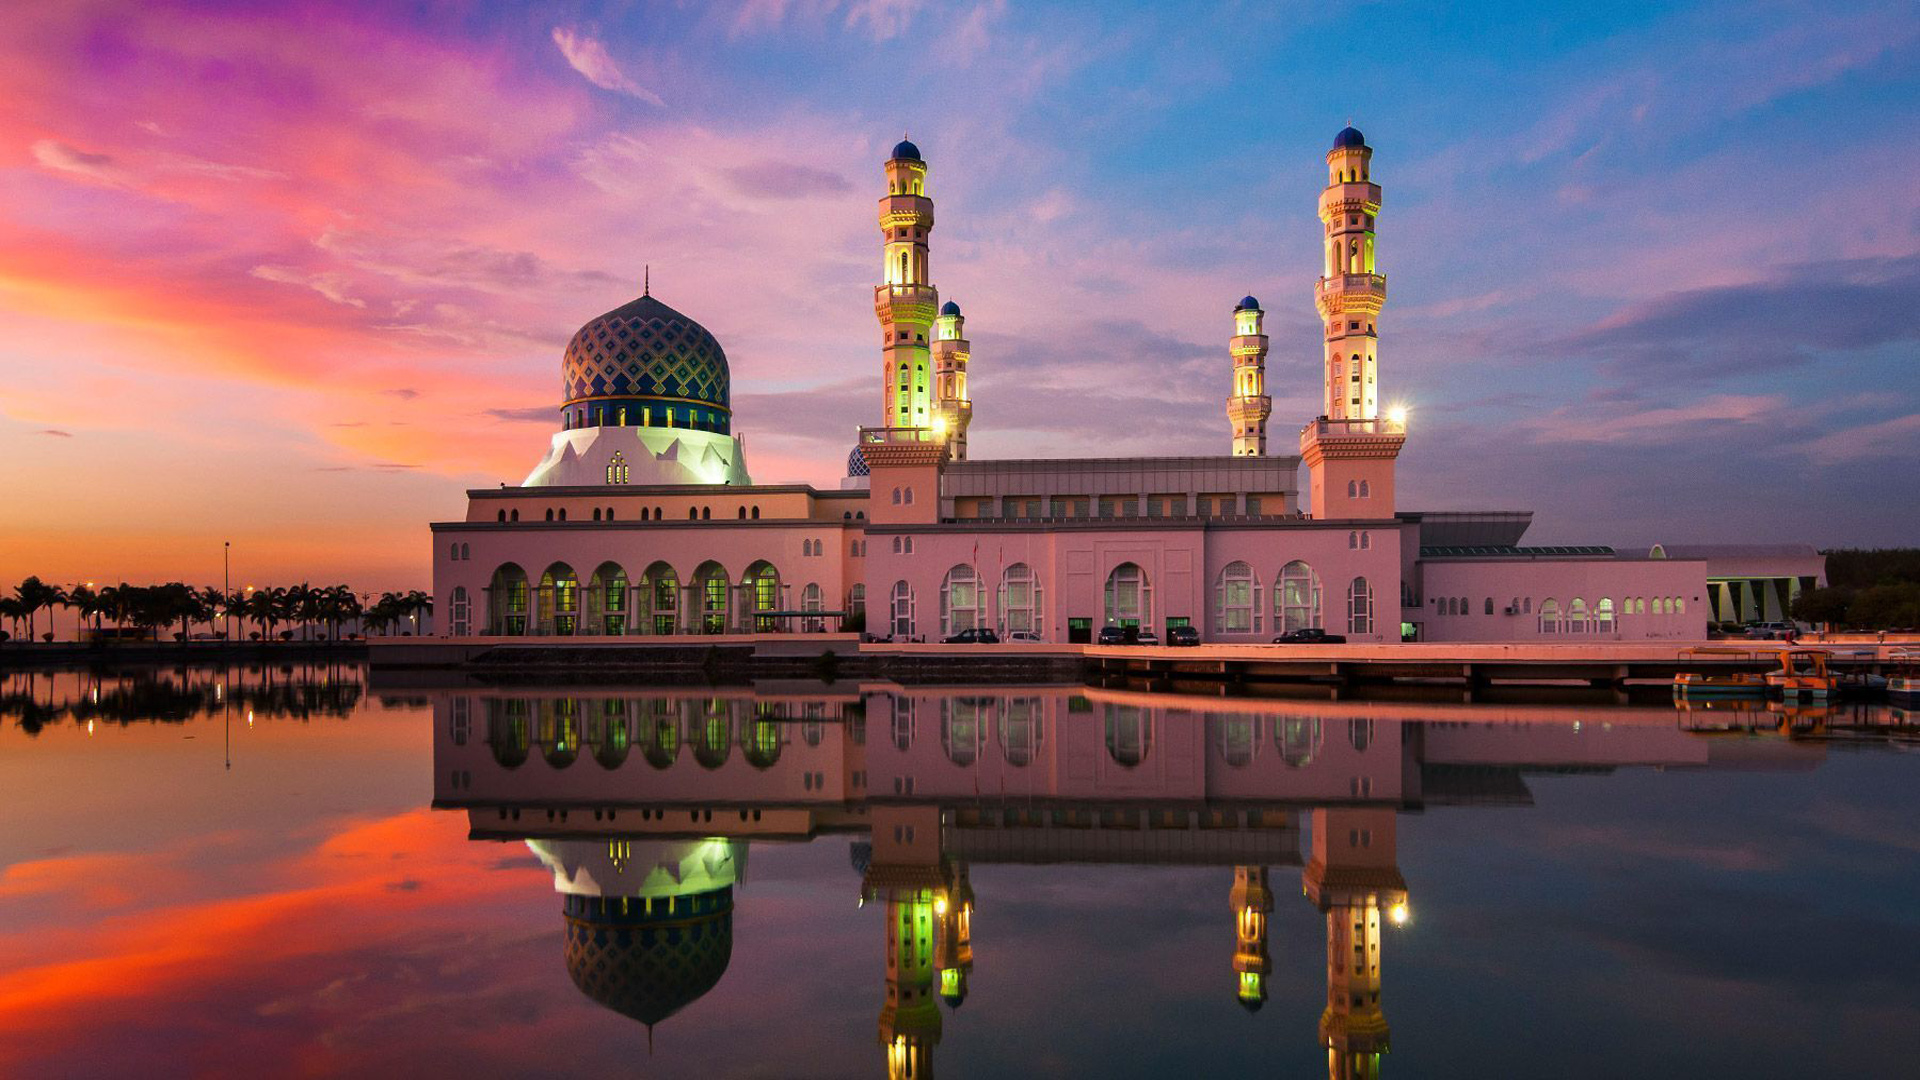 New 3d Hd Wallpapers For Pc Kota Kinabalu City Mosque Is The Second Main Mosque In